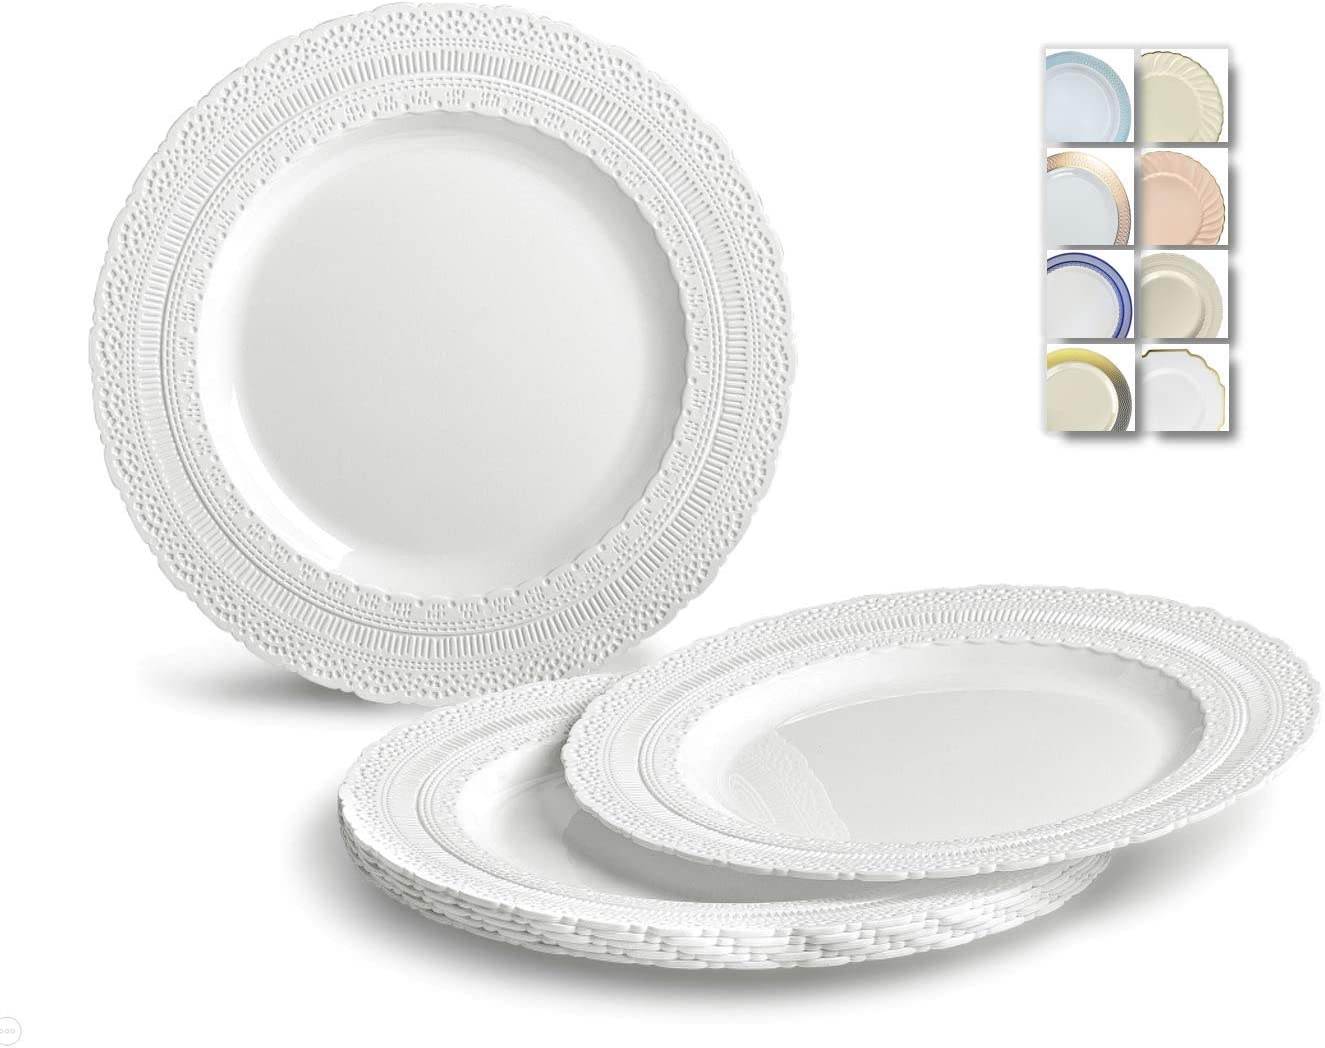 OCCASIONS 120 Plates Pack, Extra Heavyweight Vintage Wedding Party Disposable Plastic Plates (8.25'' Appetizer/dessert plate, Chateau in White) 61CWUFKhpoL